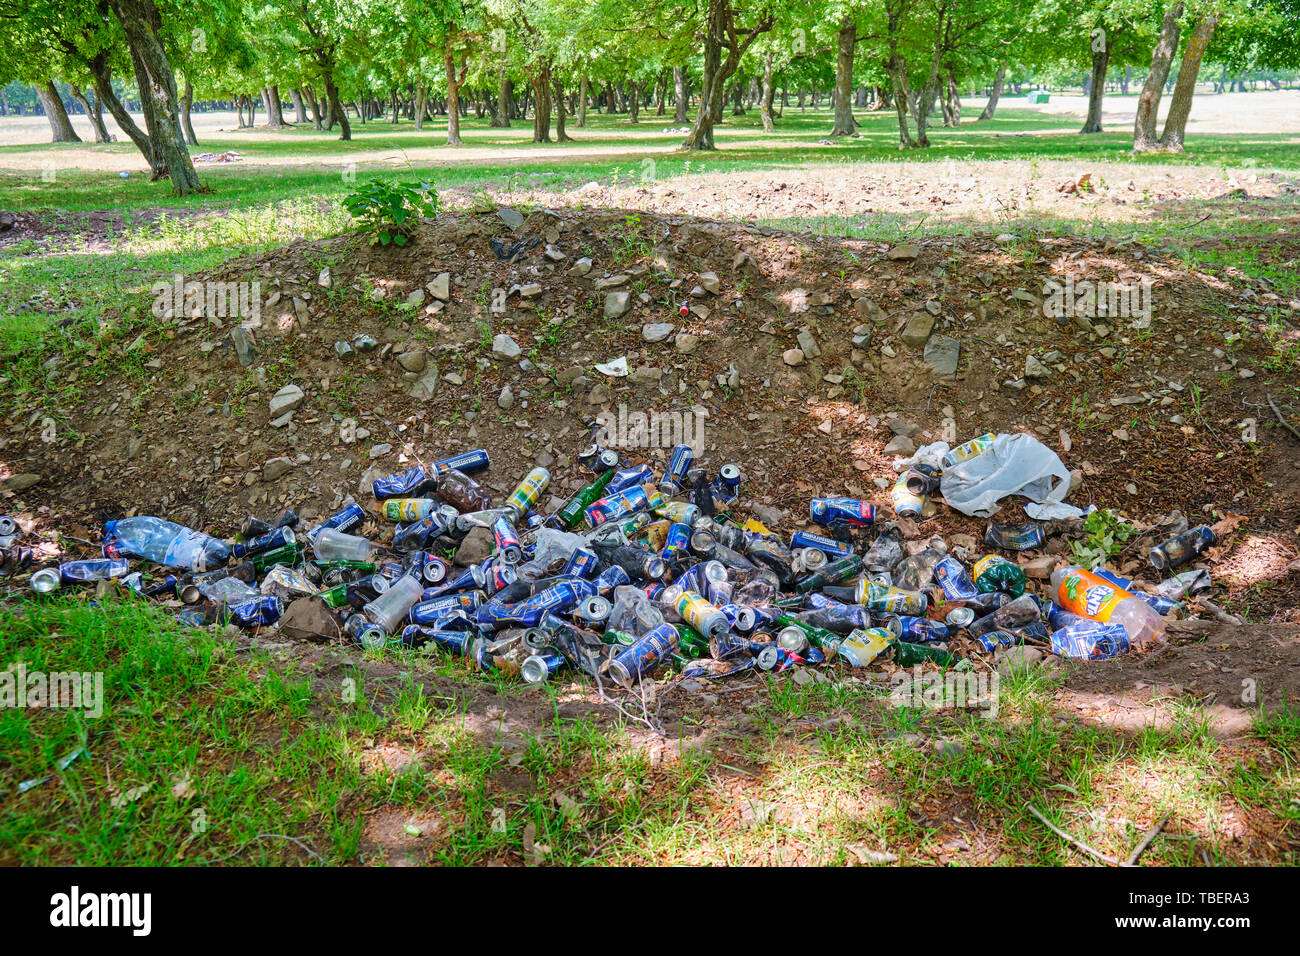 Dobrogea, Romania - May 19, 2019: Man made garbage pile in nature. Aluminium beer and soda cans, and a few plastic bottles thrown on the ground in a p Stock Photo